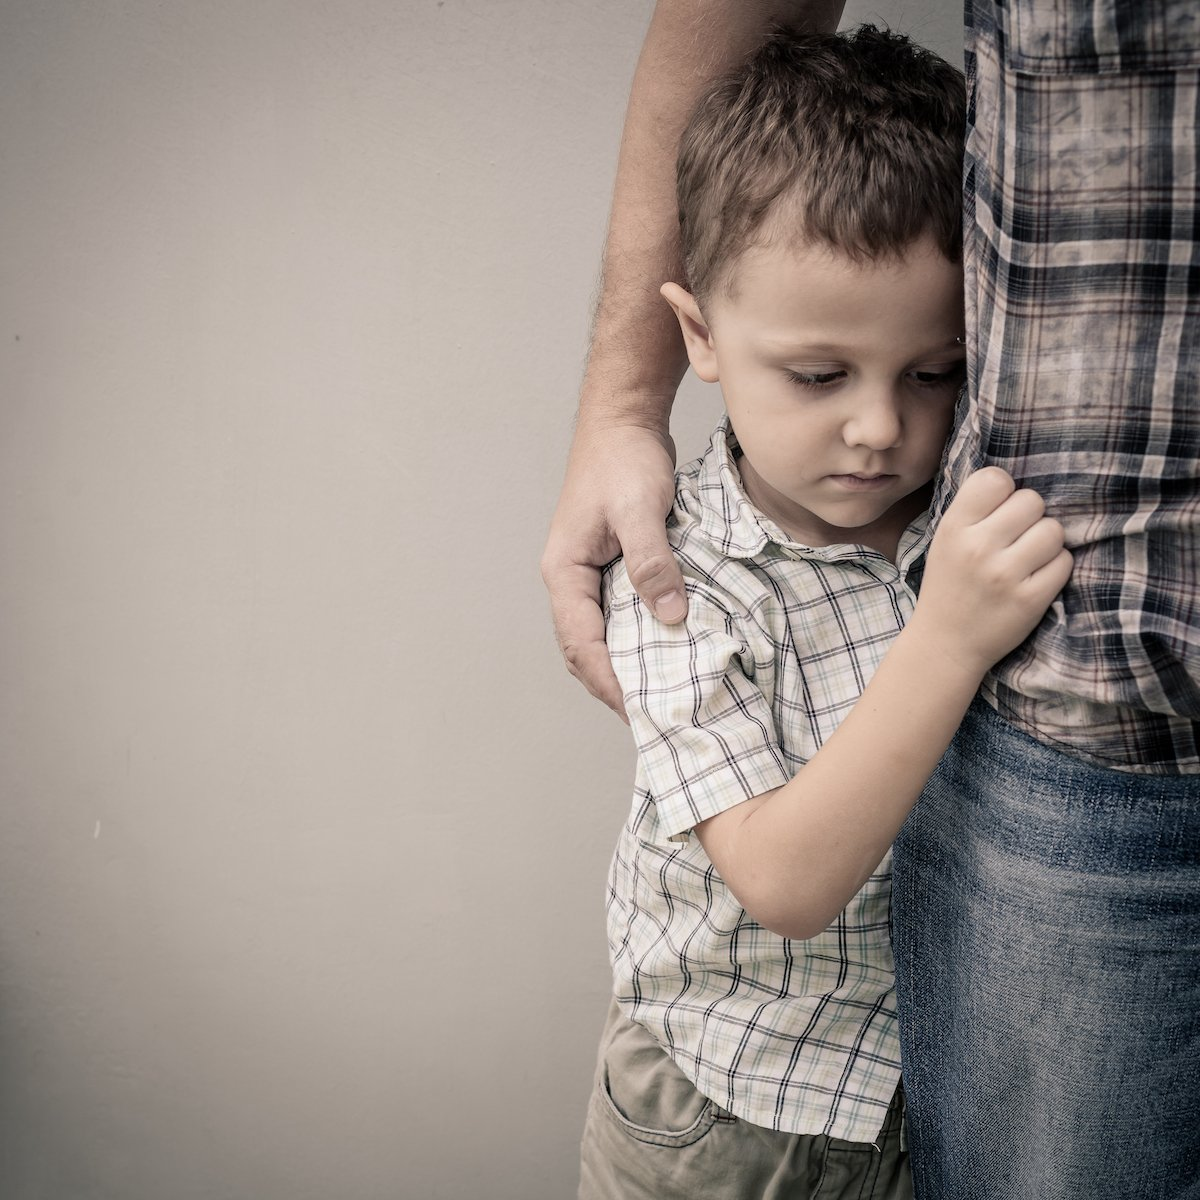 Anxious boy holding on to father.